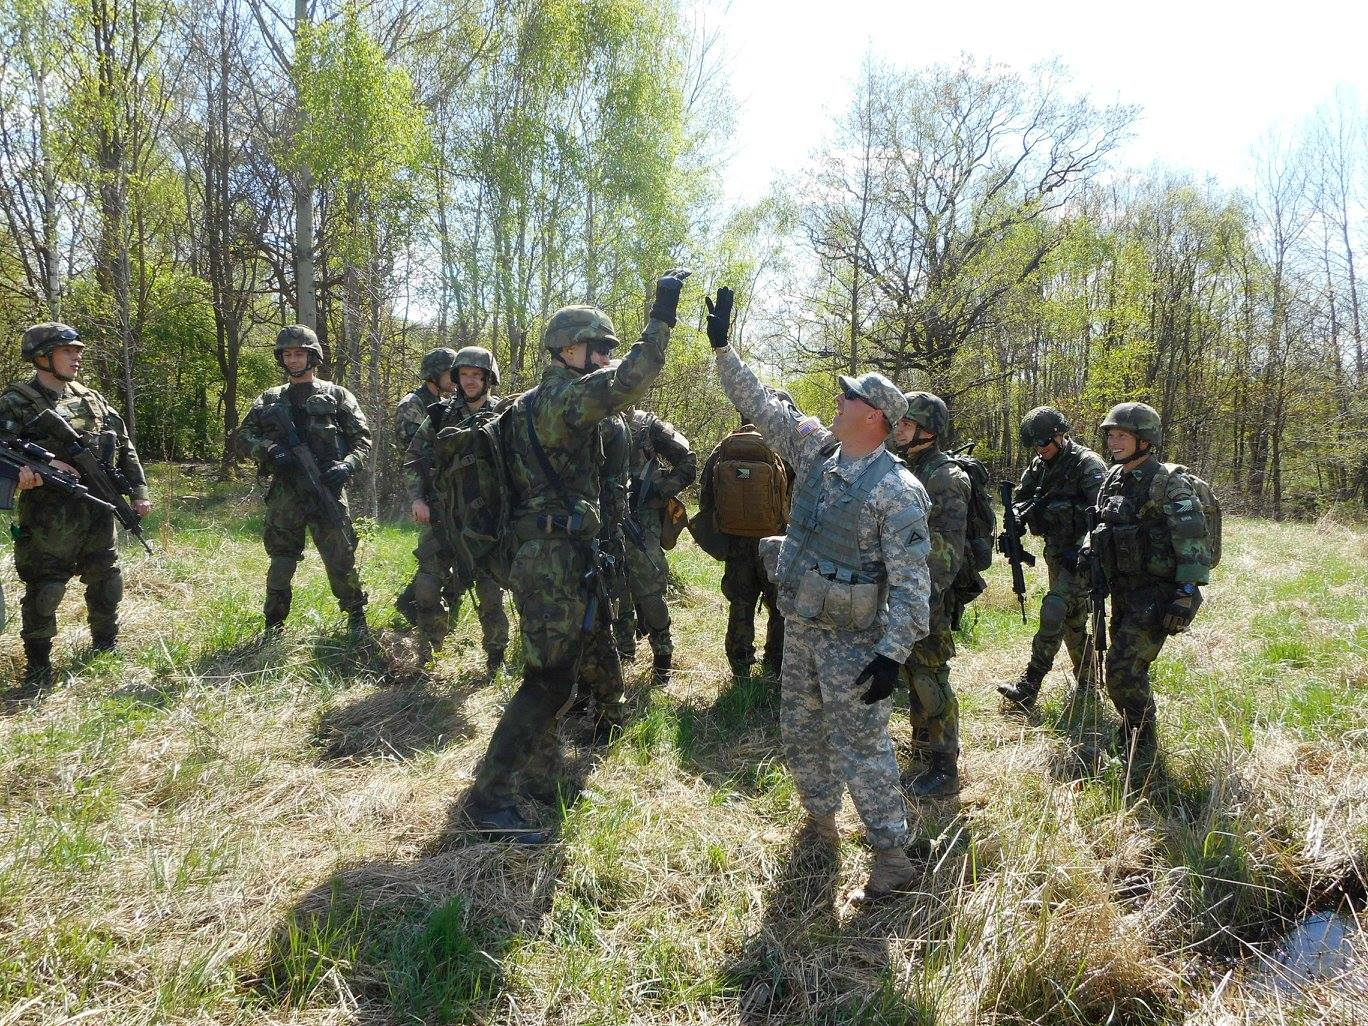 Human-to-human interaction: A 7th Army NCO Academy mobile training team's Warrior Leader Course in the Czech Republic. (Photo courtesy of 7th Army NCO Academy)